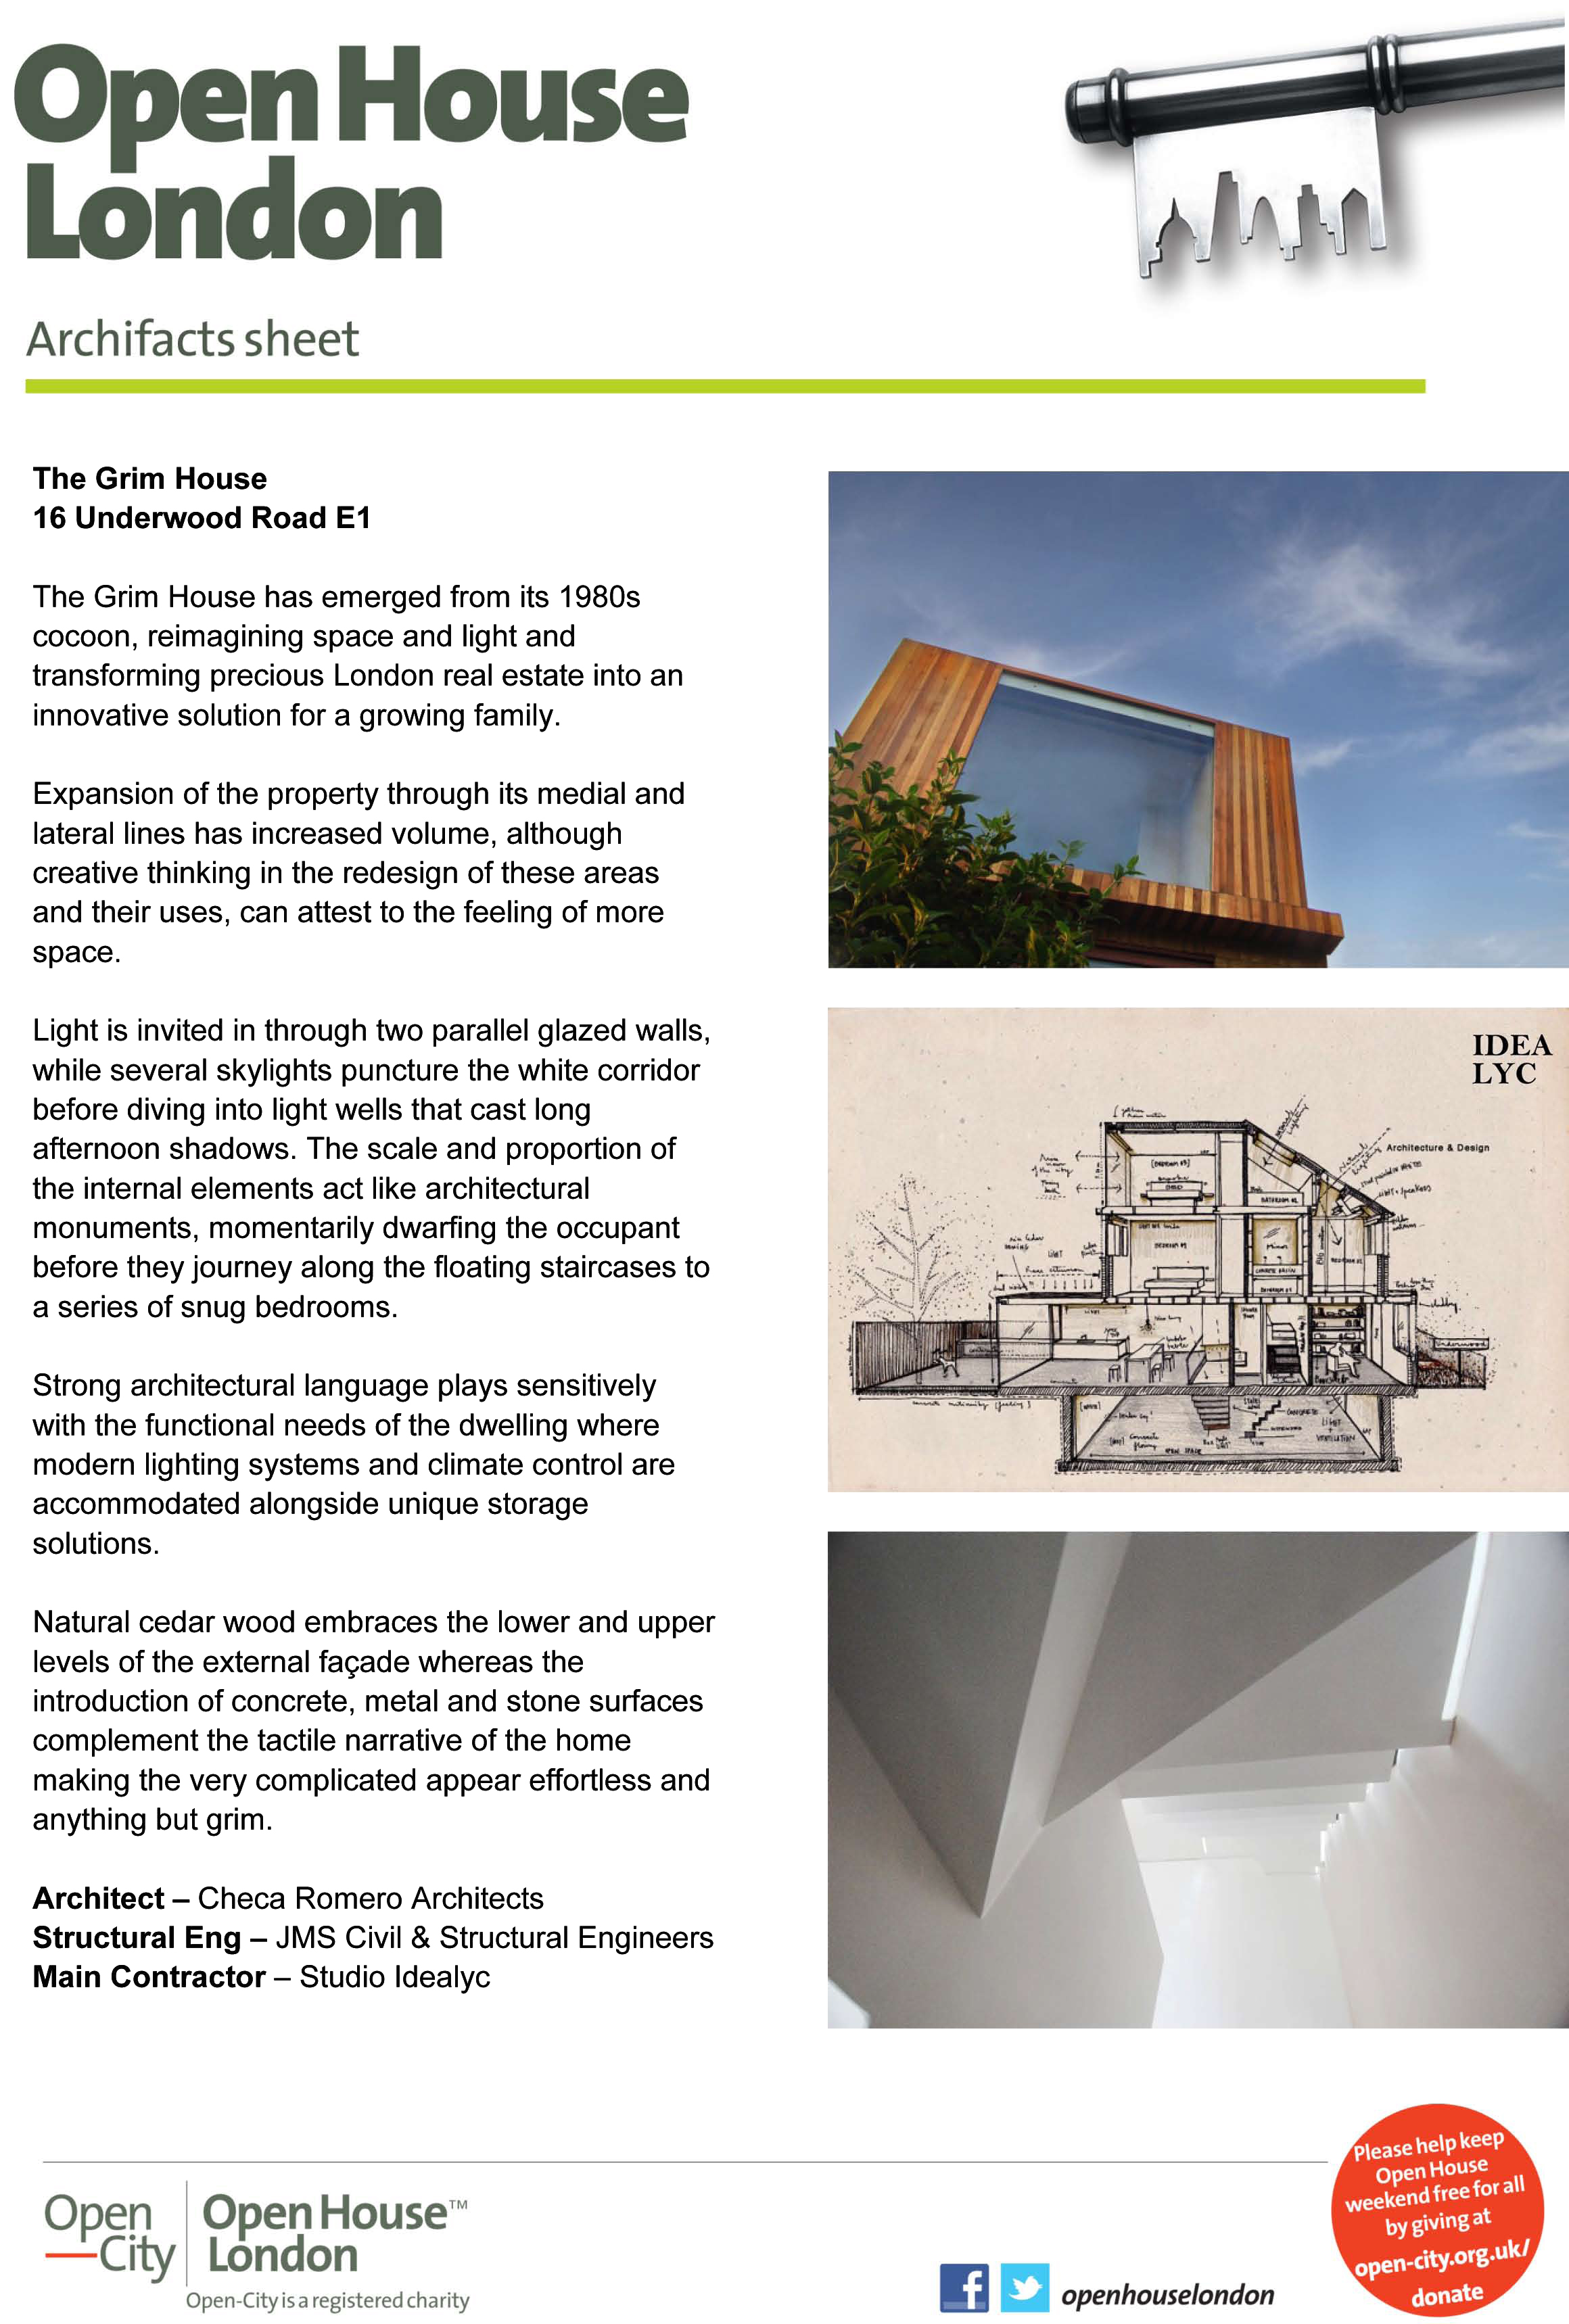 thegrimhouse-factsheet-1-openhouse2015v2-compressed.jpg